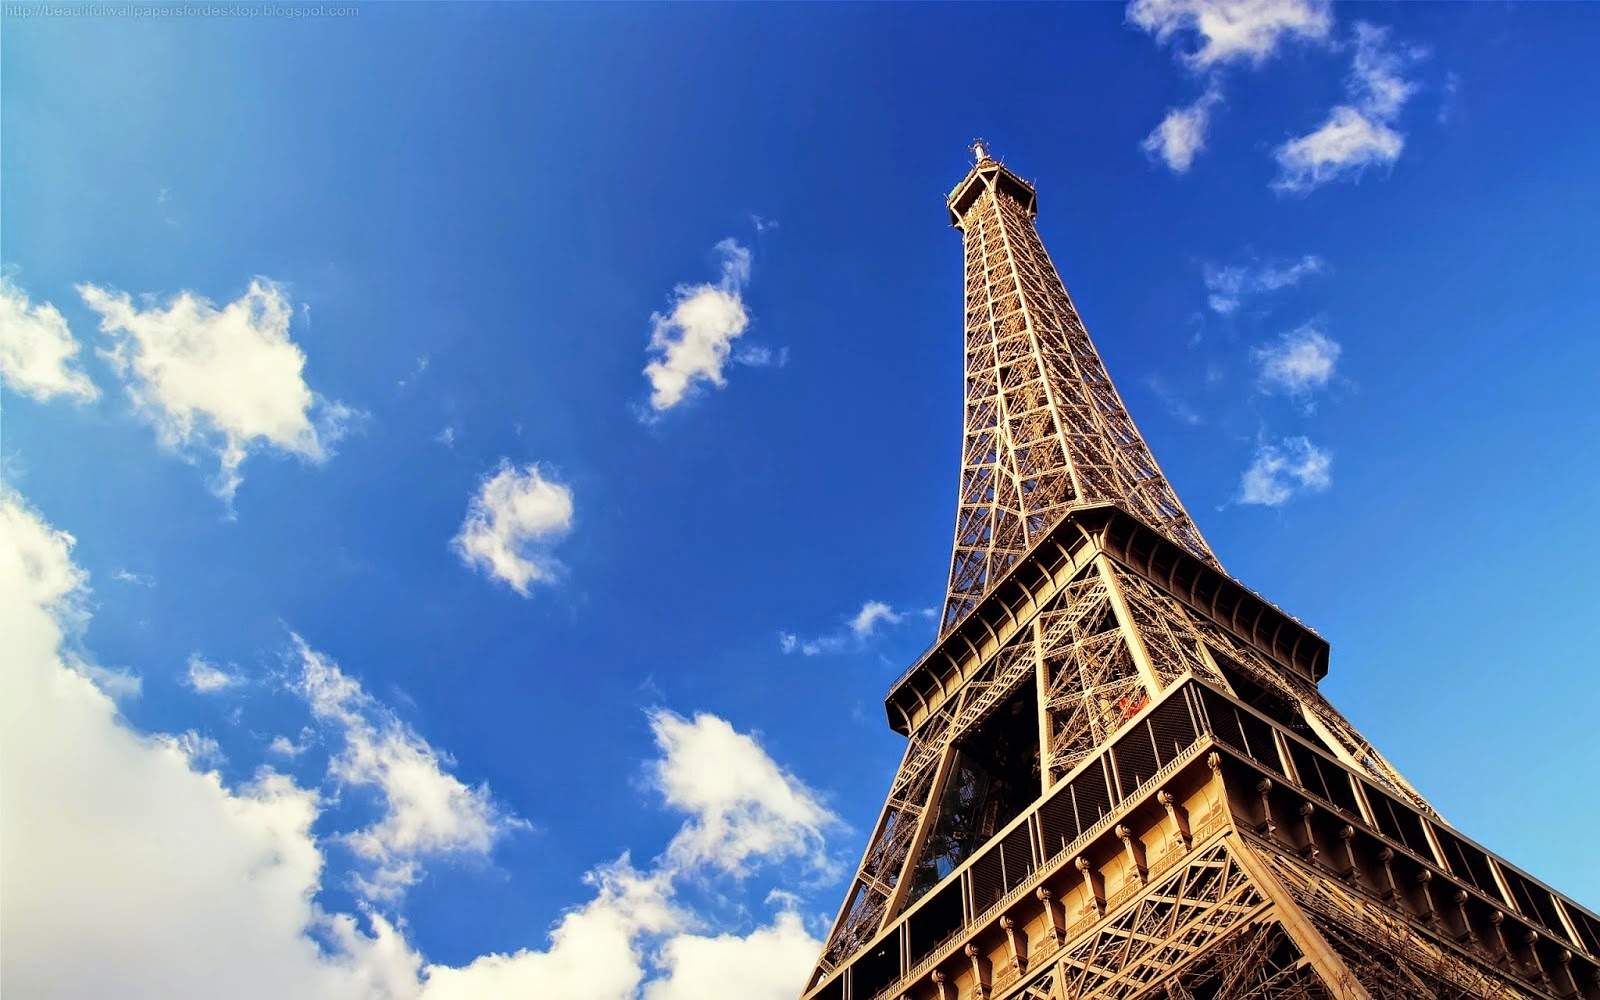 eiffel tower wallpaper - photo #17